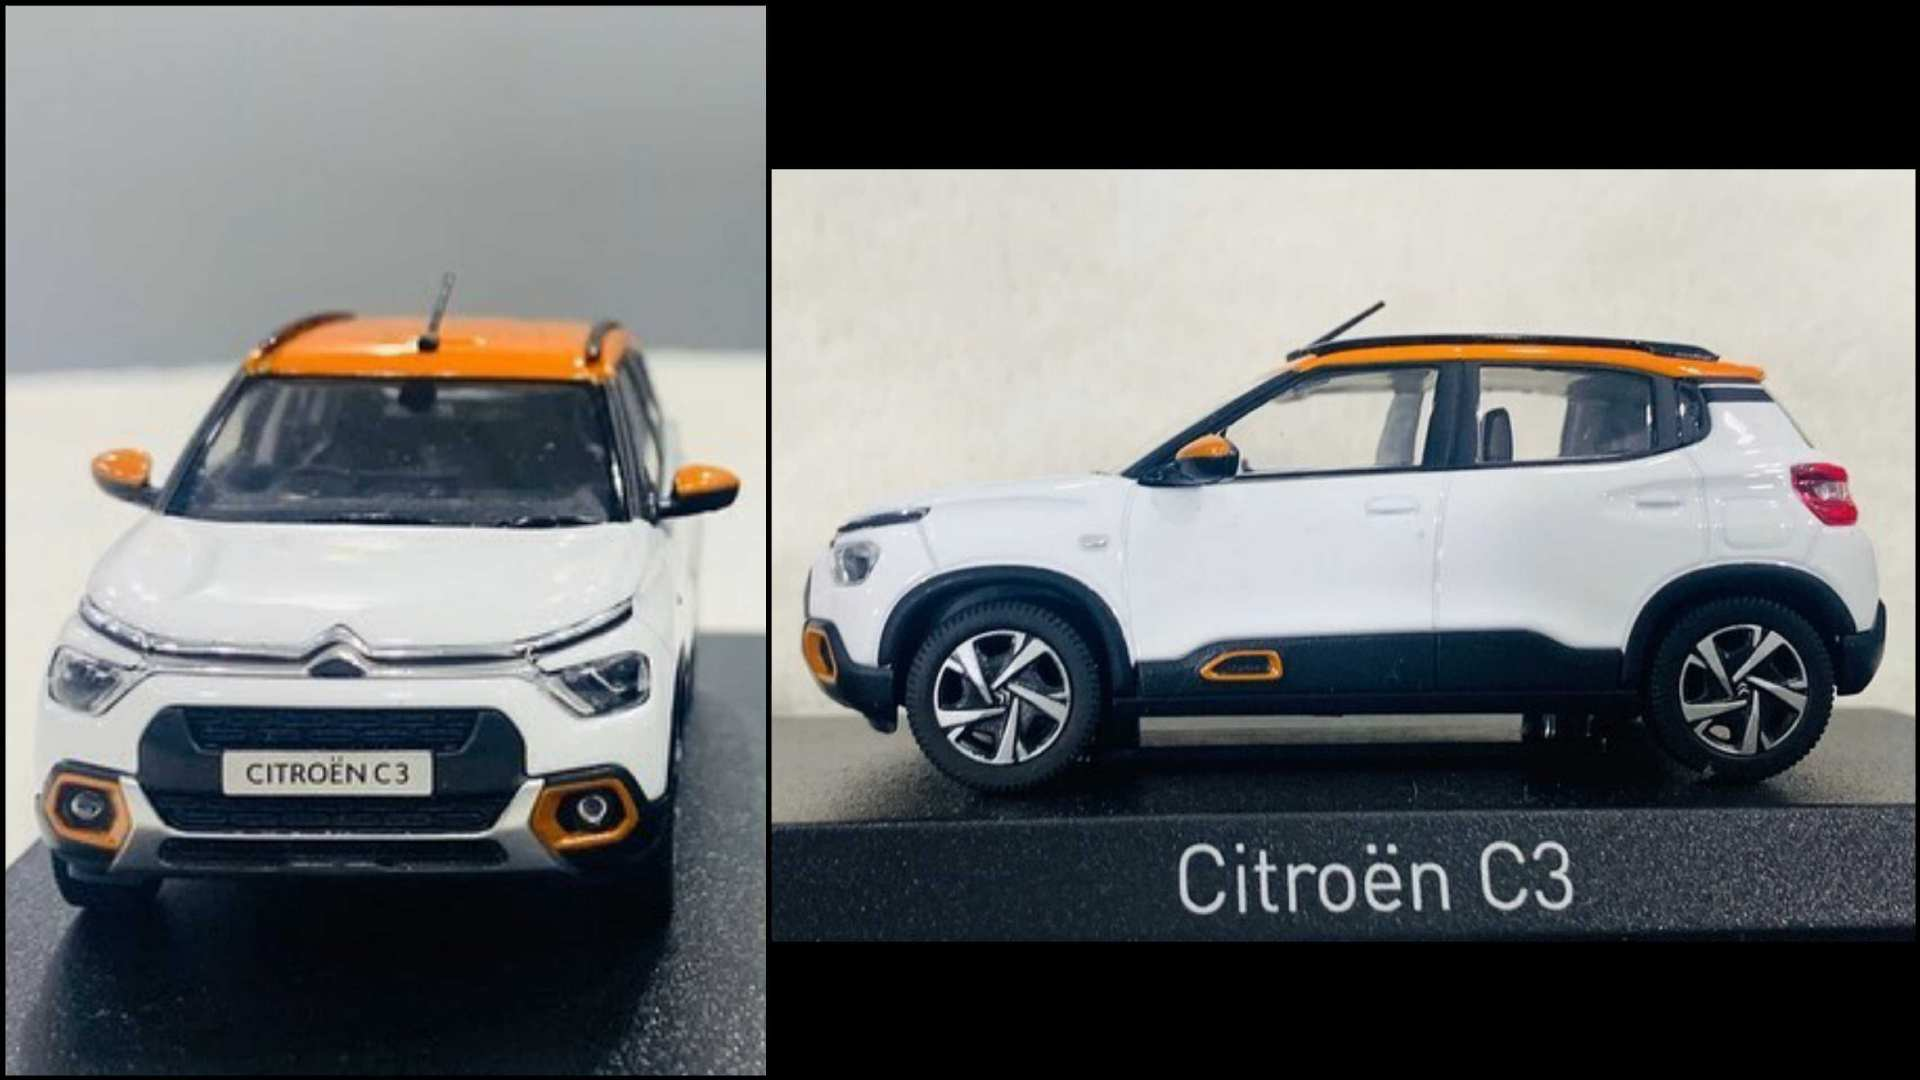 India-bound Citroen C3 compact SUV's exterior design revealed in scale model images- Technology News, Gadgetclock